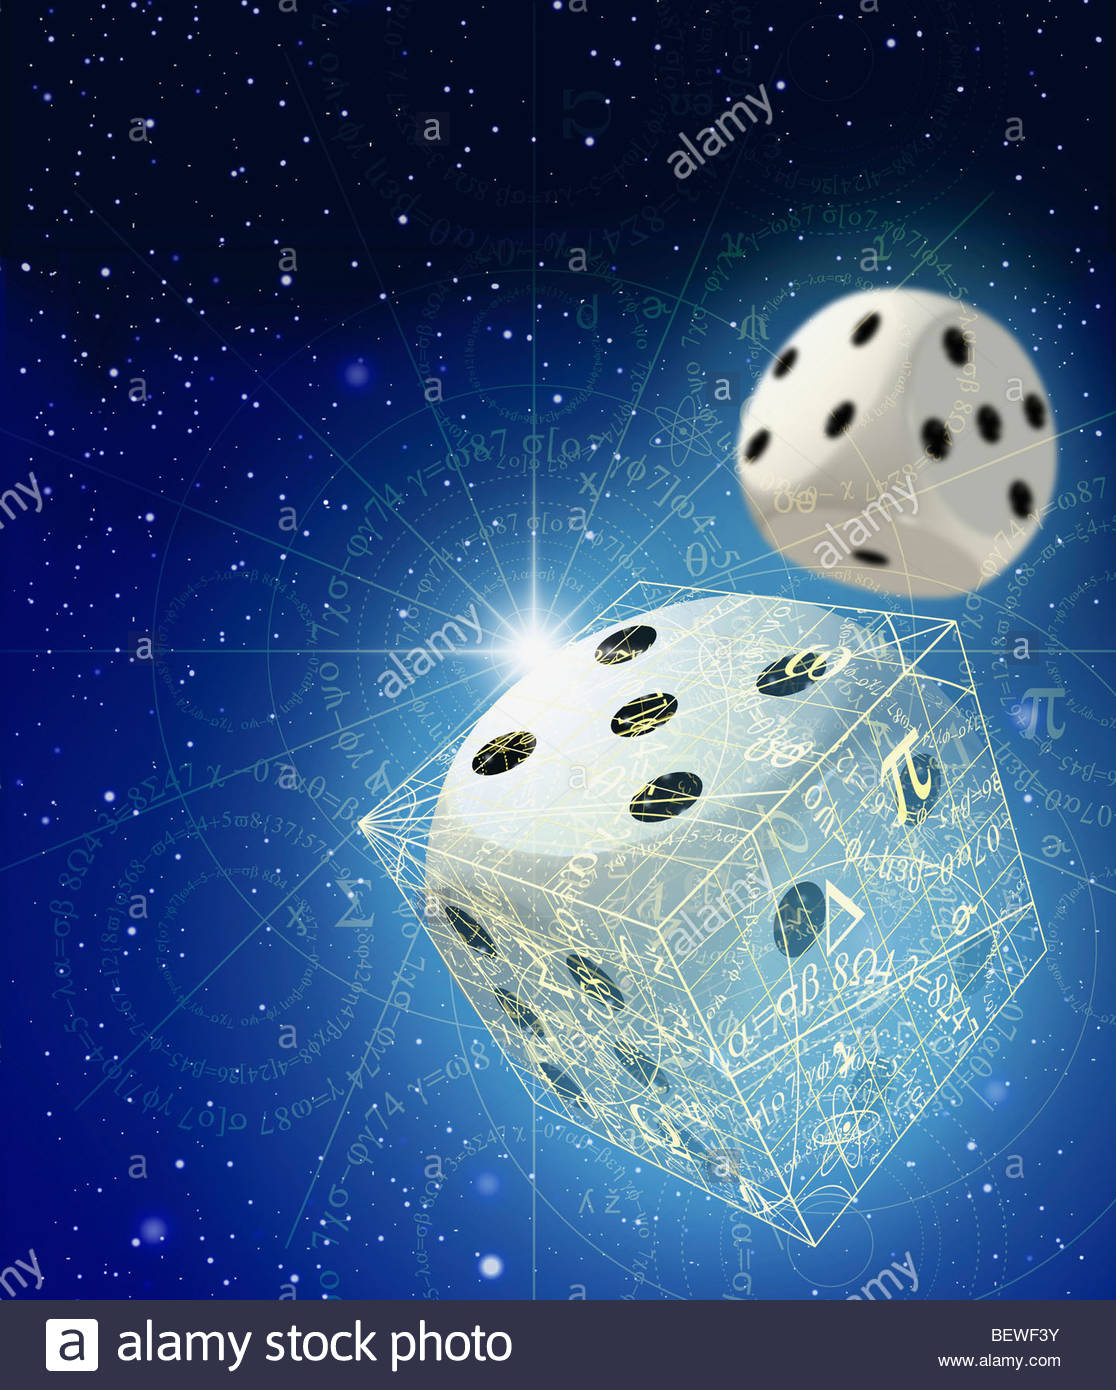 Dice and mathematical equations in space - Stock Image